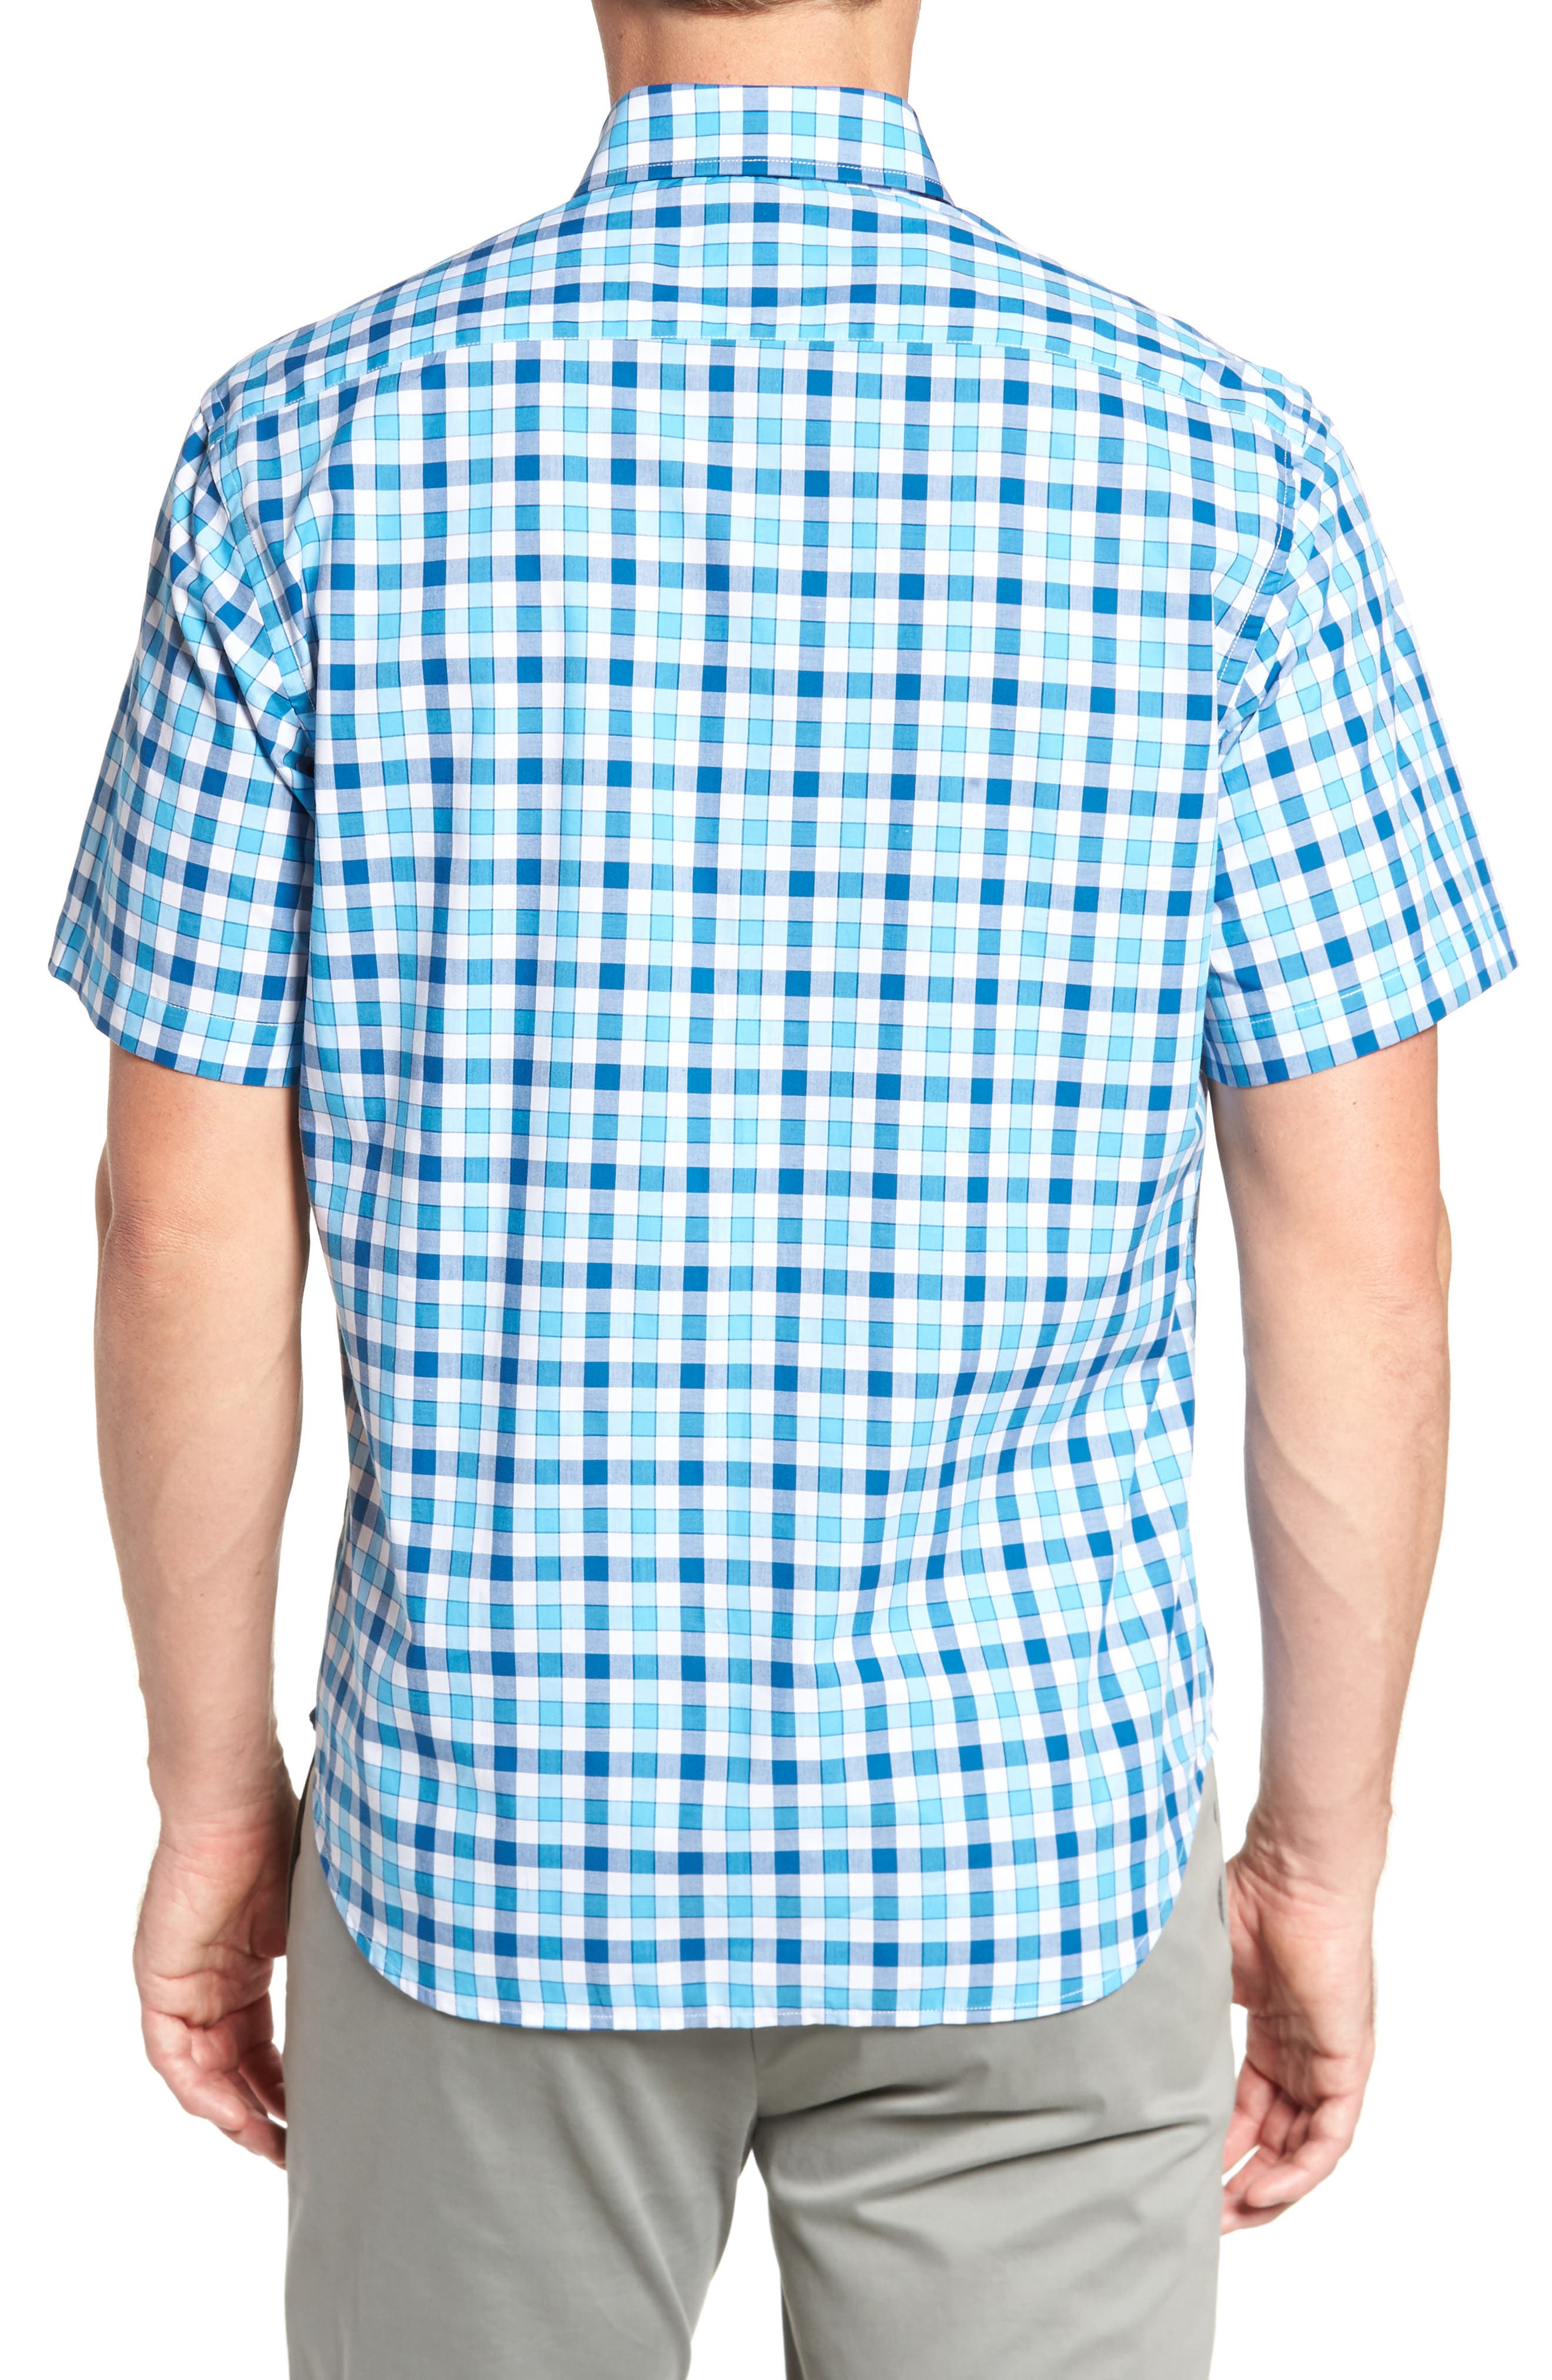 West We Go Regular Fit Plaid Sport Shirt,                             Alternate thumbnail 2, color,                             465